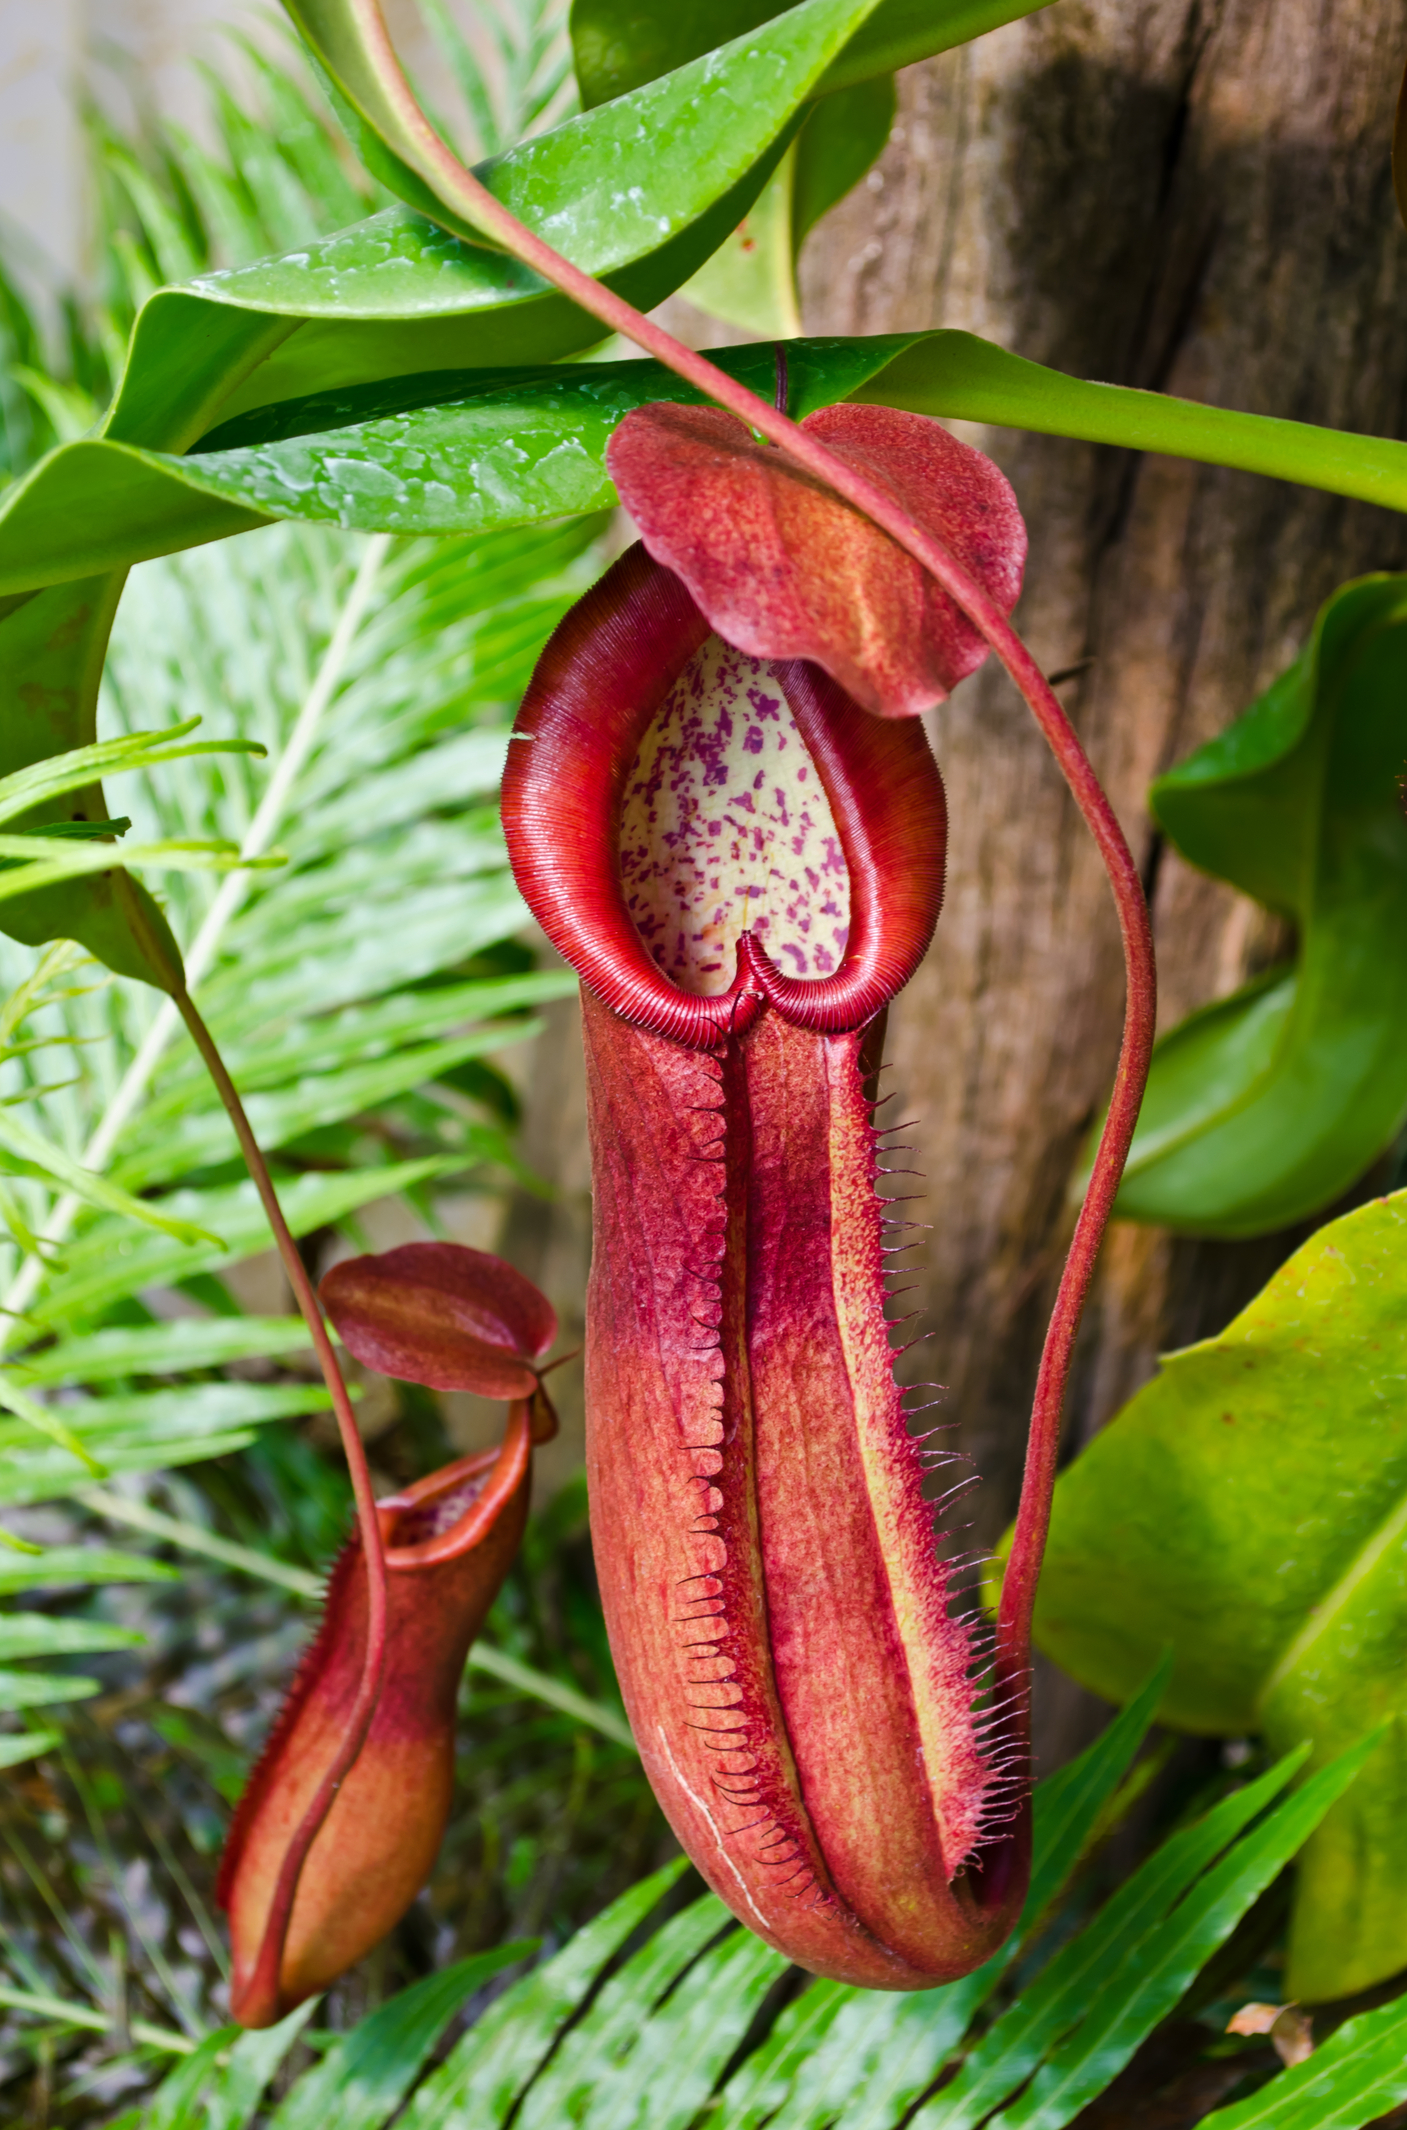 Pitcher plants are one of the most unique looking garden plants out there. High carnivorous, these plants are great for controlling pests like insects and bugs. Learn how to care for your own pitcher plant with this great Pitcher plant guide. Check it out!